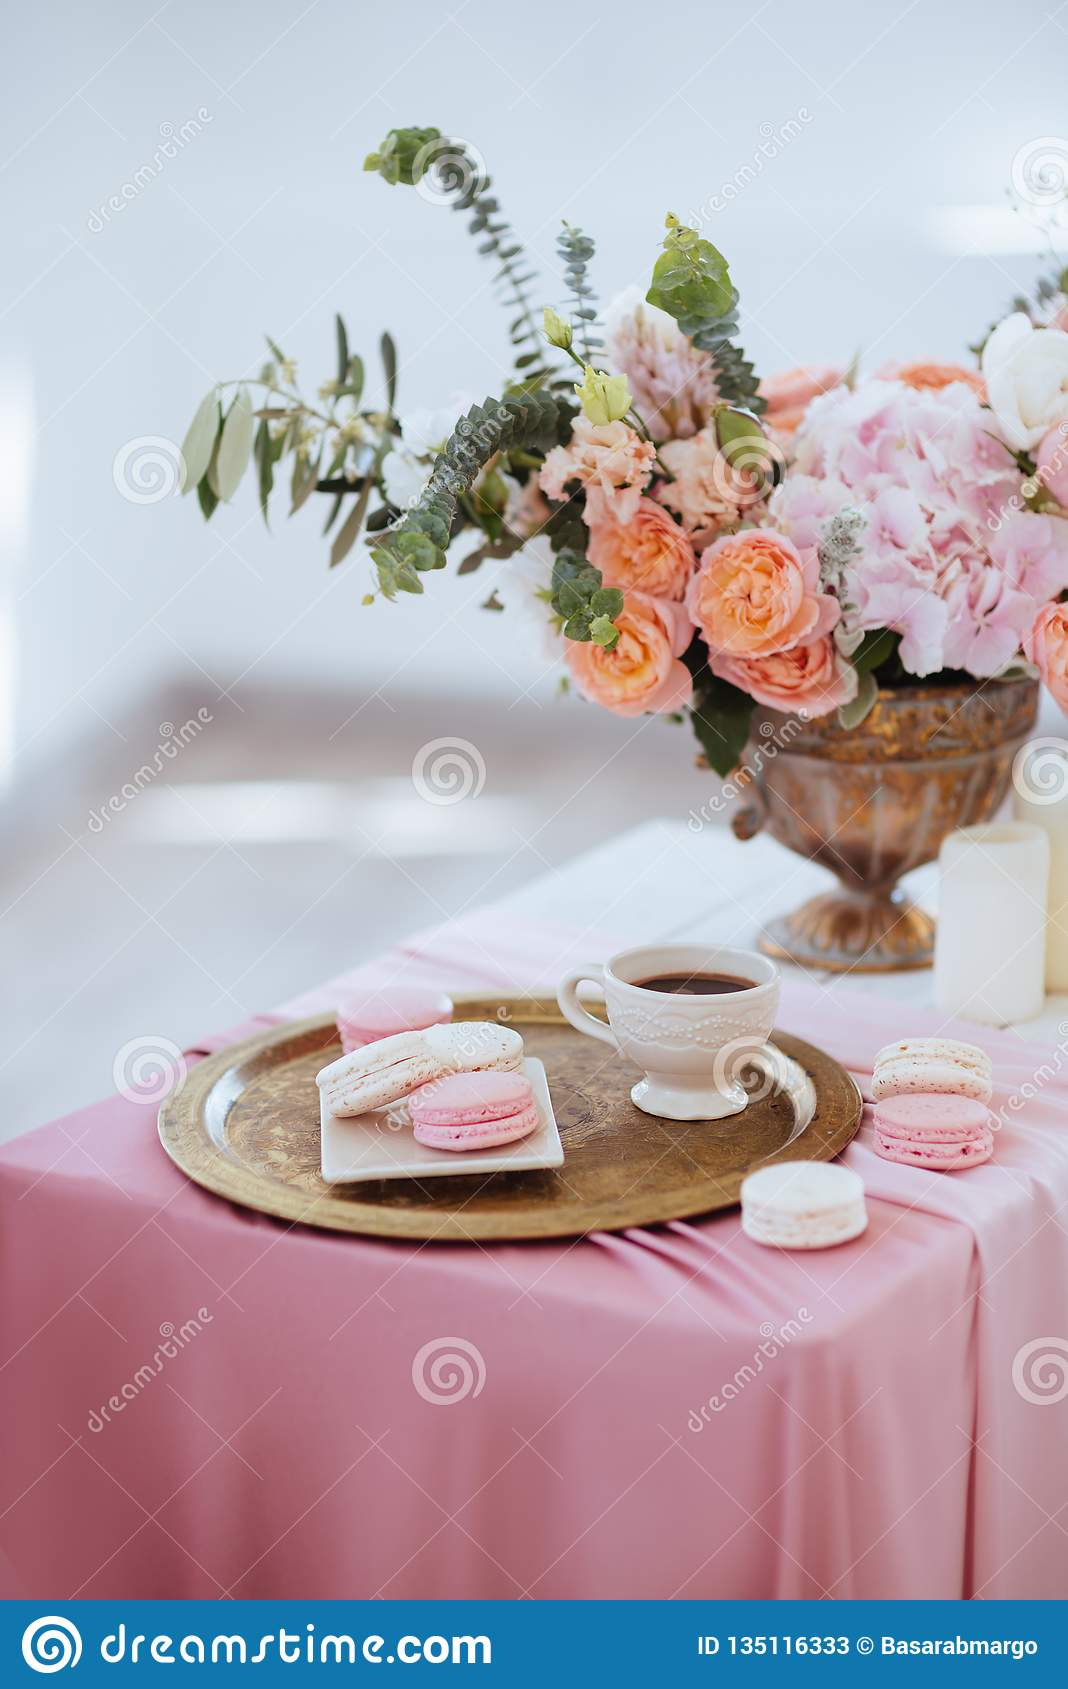 Beautiful Decoration Setup For Wedding Day Stock Image ...